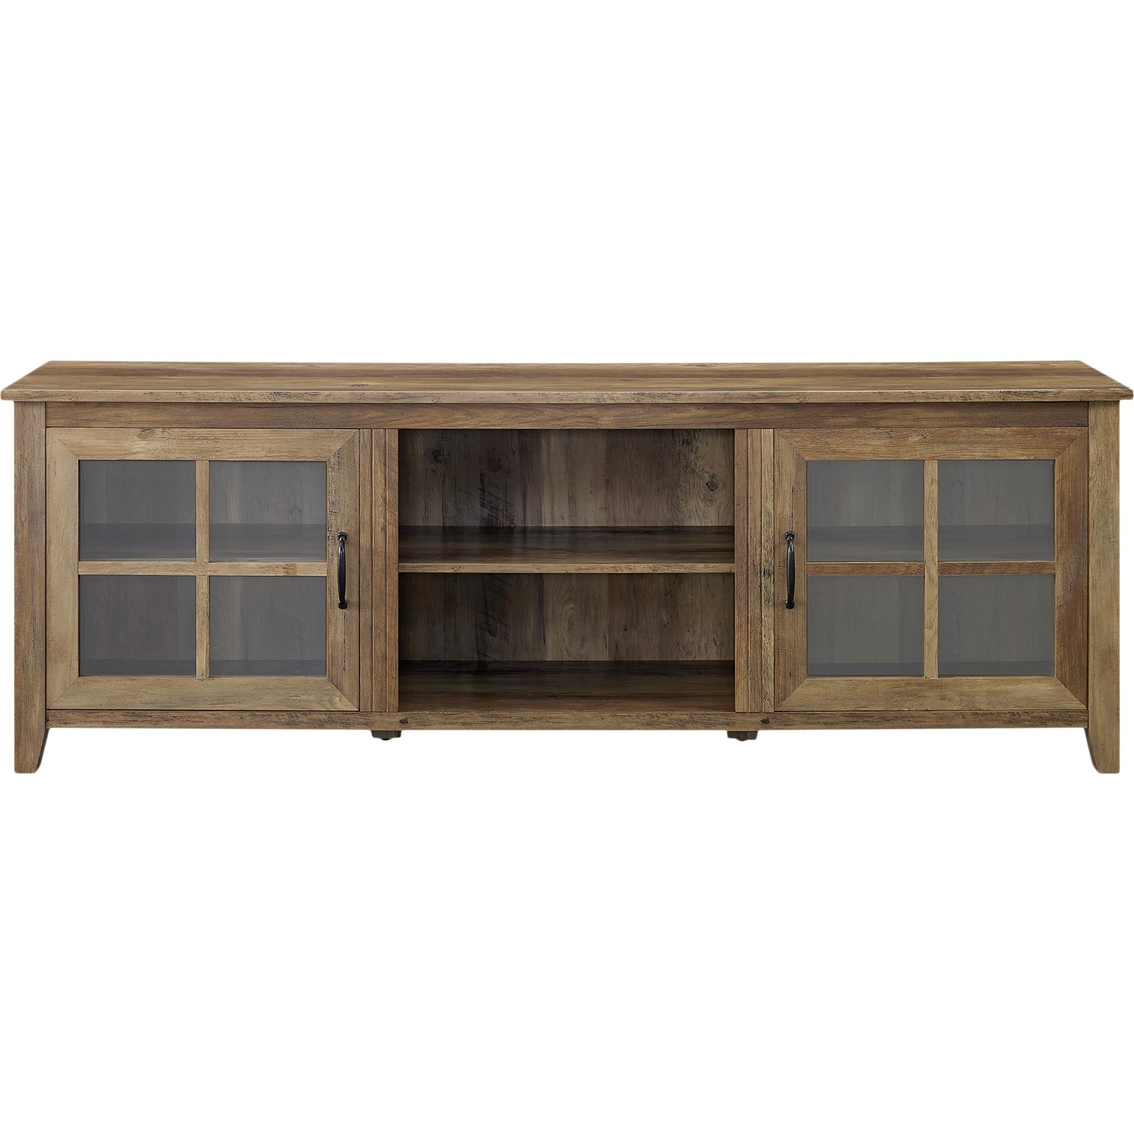 Walker Edison 70 In Wood Farmhouse Tv Stand With Glass Doors Media Furniture Furniture Appliances Shop The Exchange